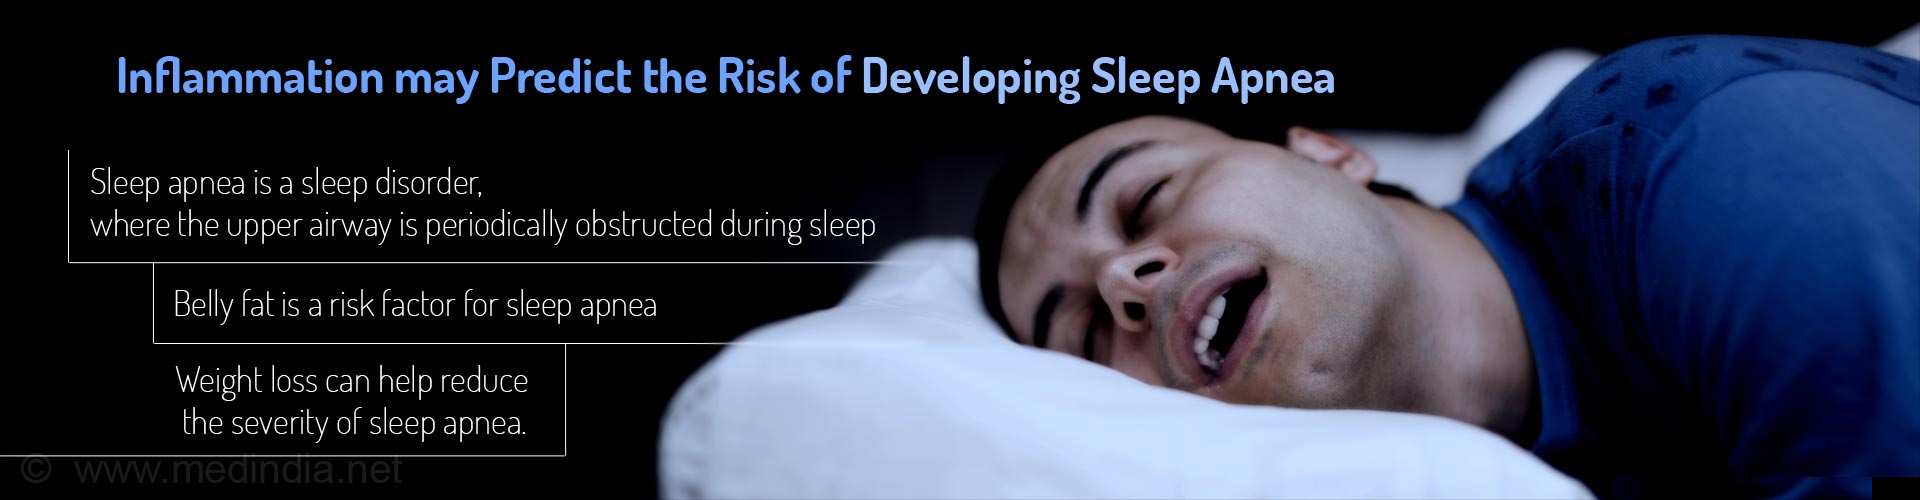 Inflammation may predict the risk of developing sleep apnea